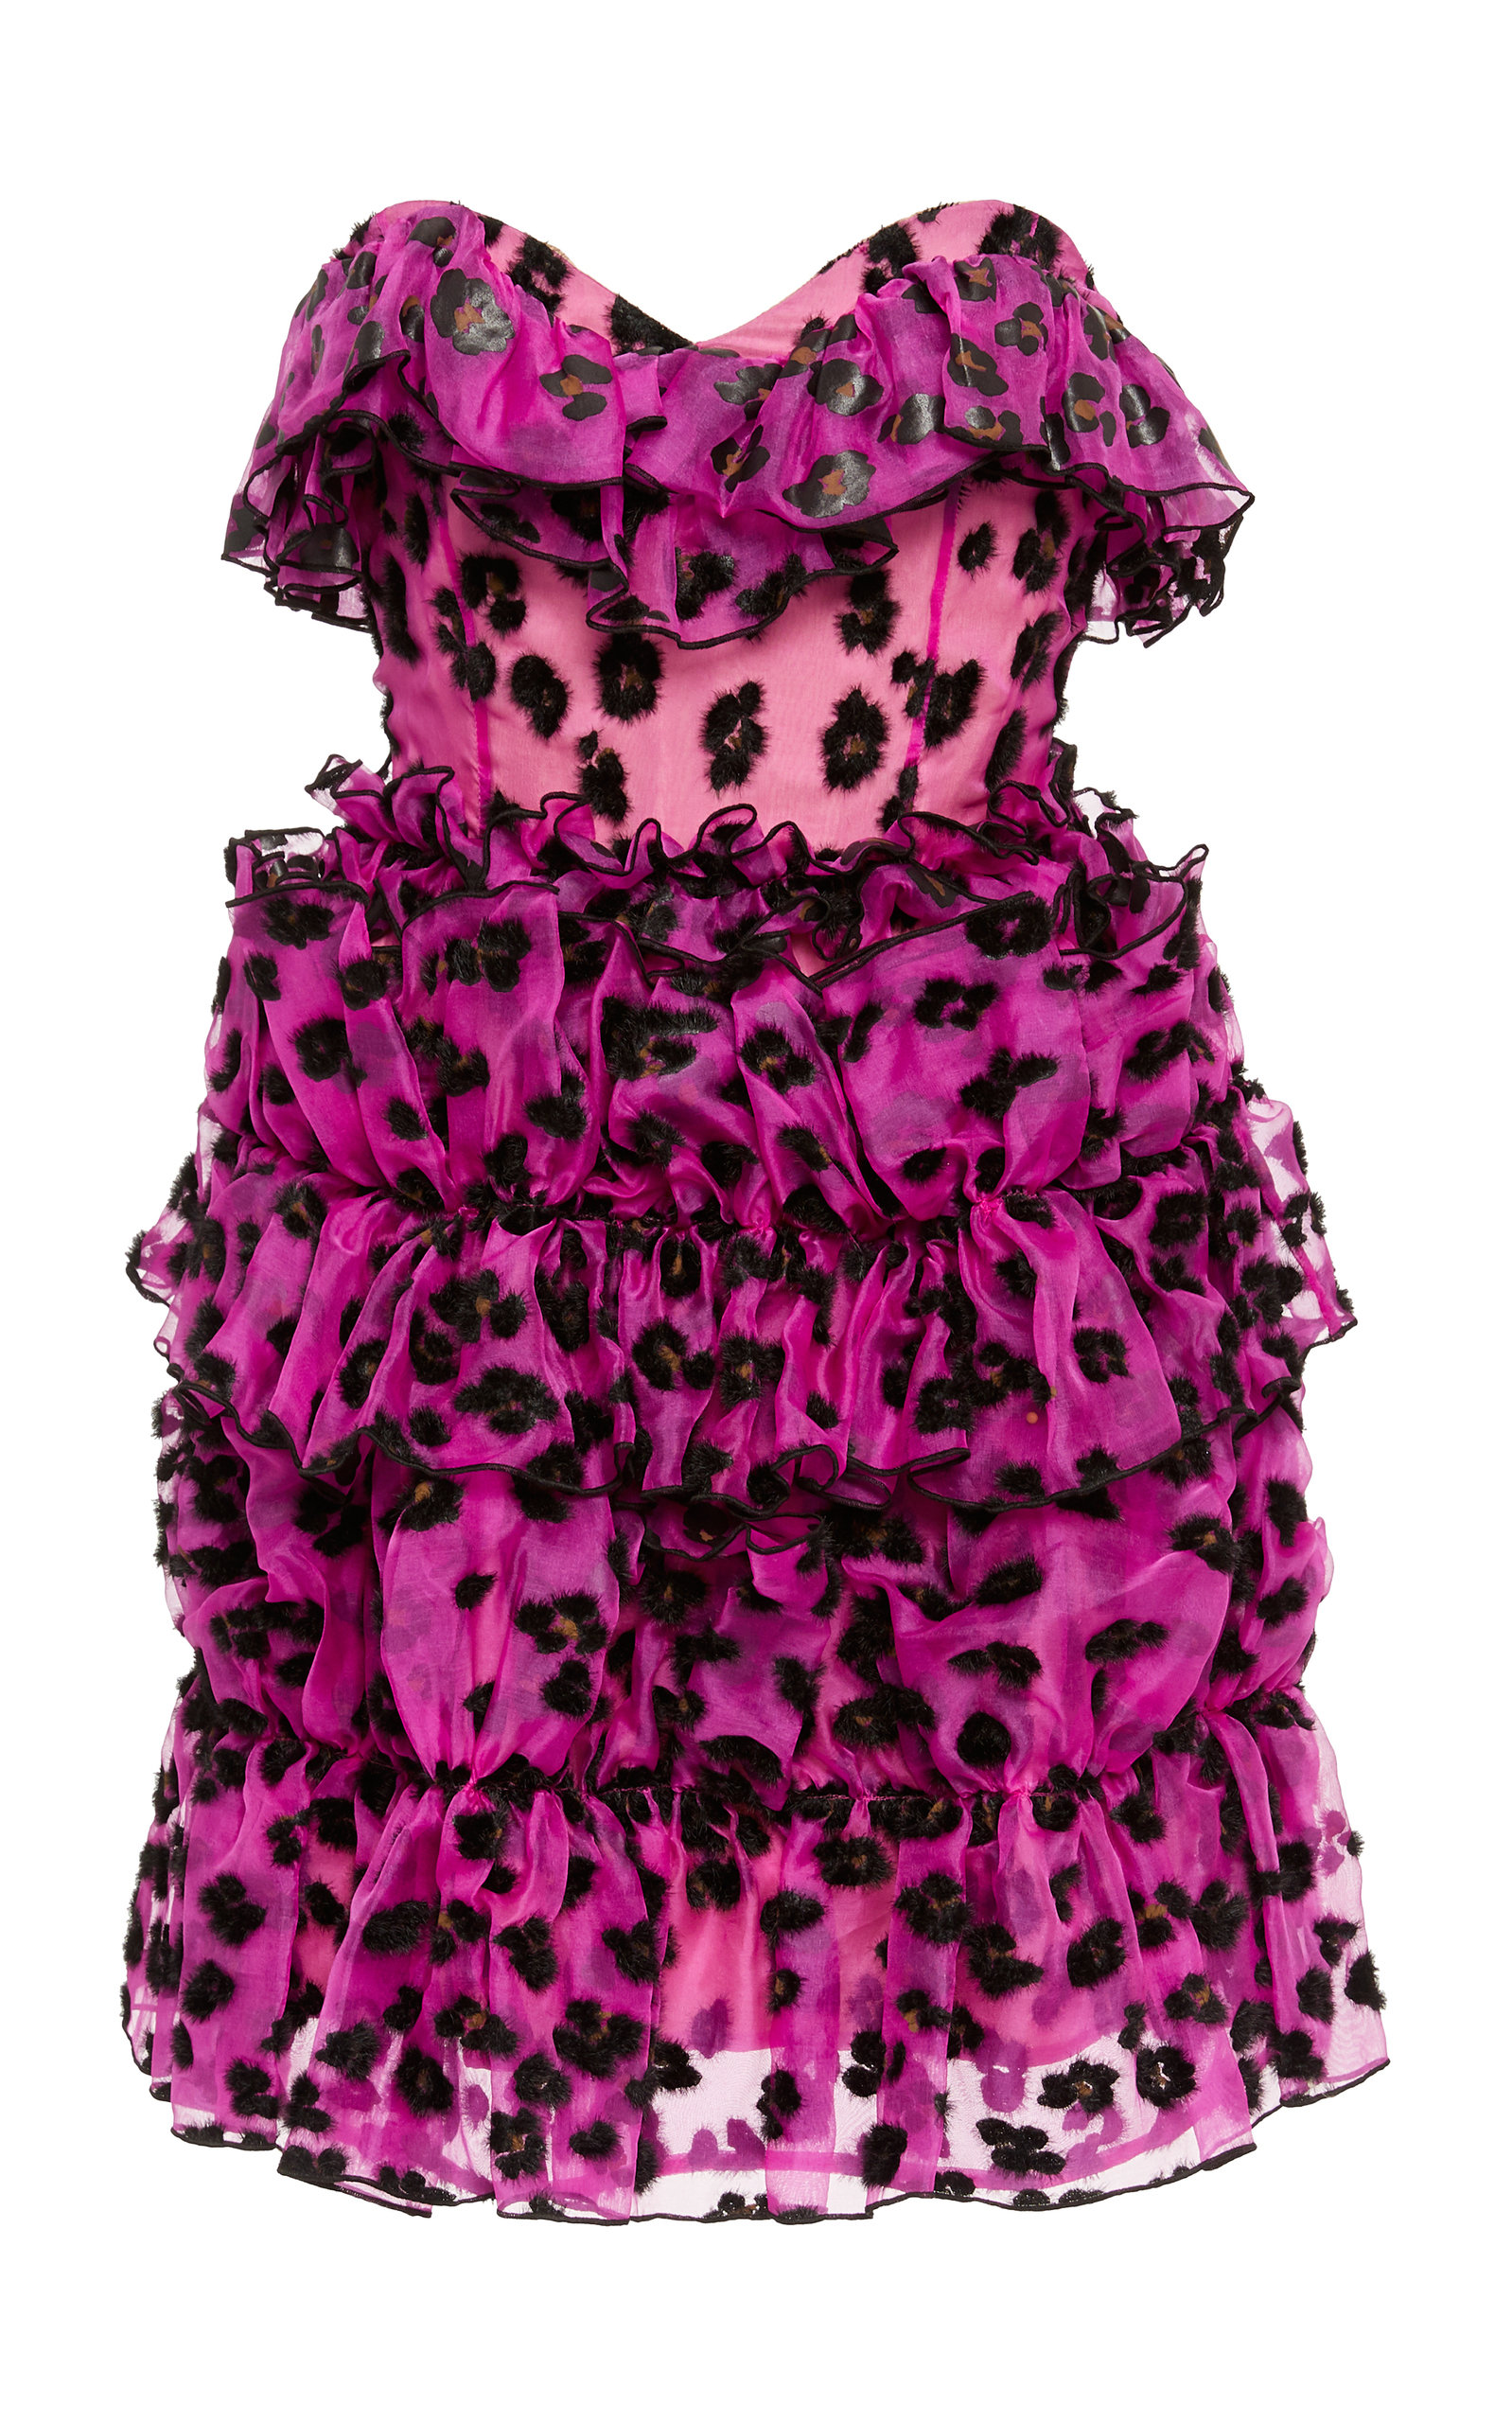 Buy Christopher Kane Leopard Ruffled Corset Mini Dress online, shop Christopher Kane at the best price